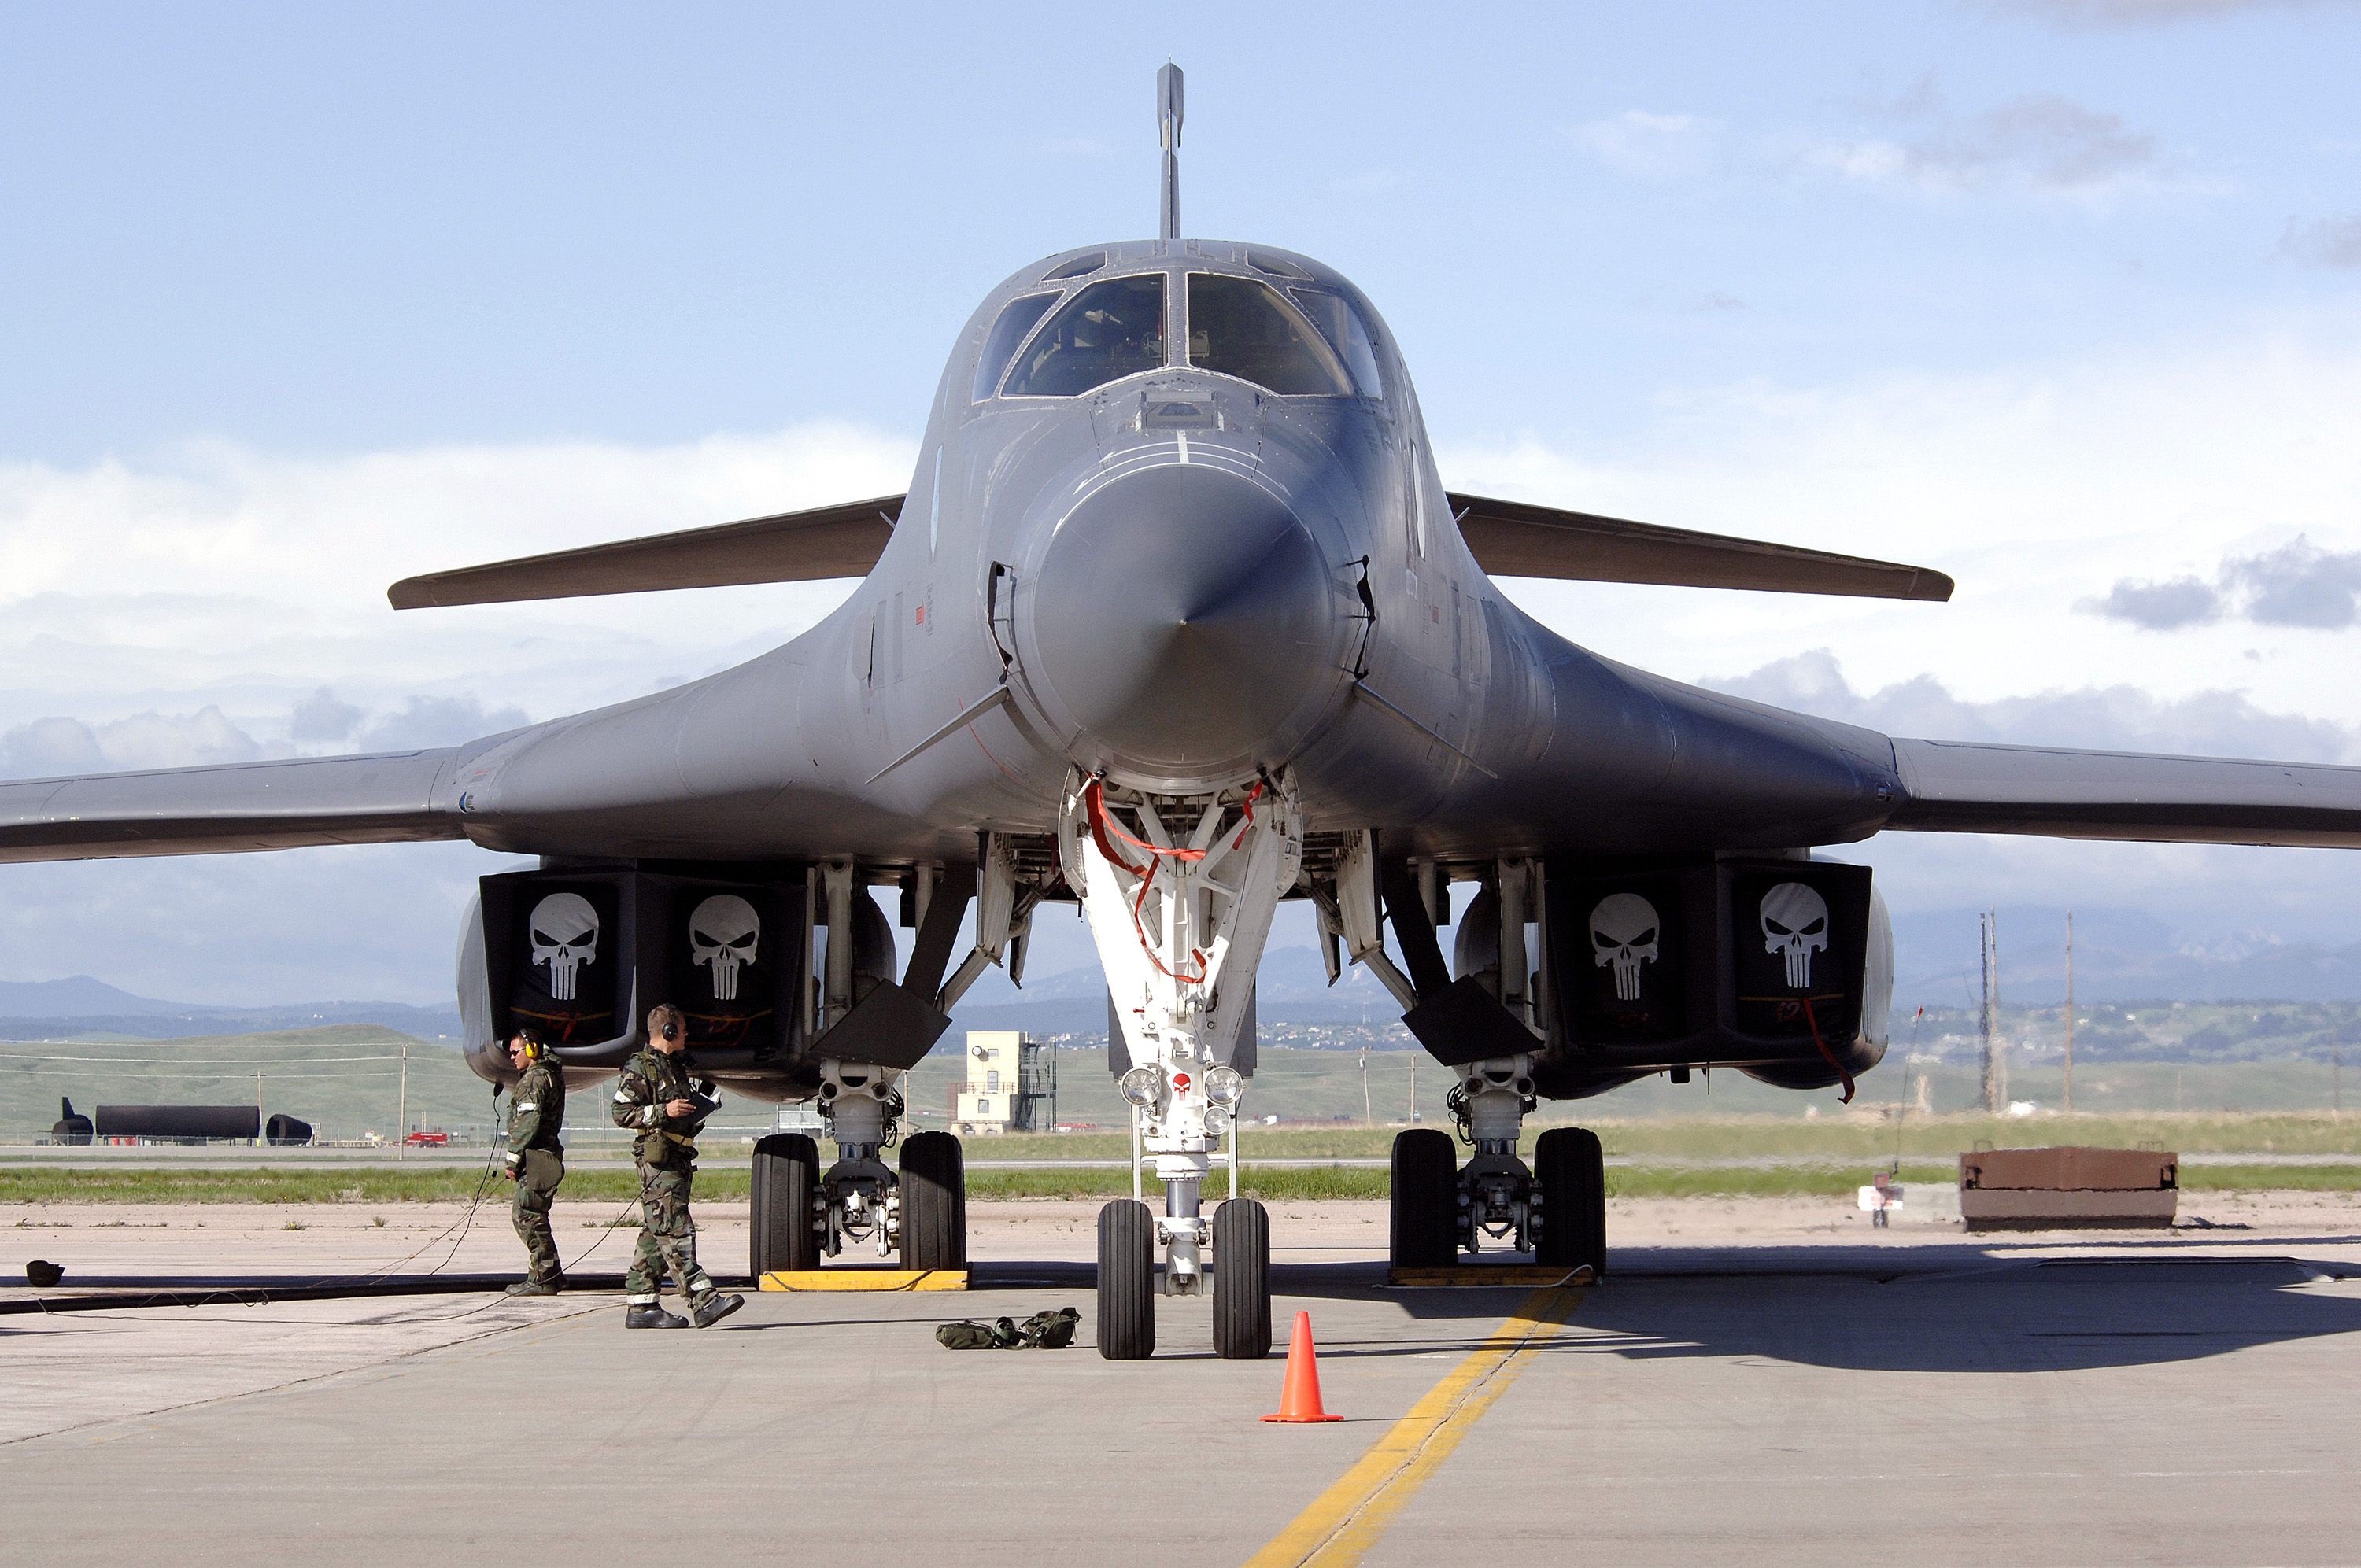 A B-1 Lancer awaits a pre-flight inspection at Ellsworth Air Force Base, S.D., on Tuesday, May 23, 2006. The base is undergoing an exercise named Badlands Express 06-03 in preparation for an operational readiness inspection in July.   (U.S. Air Force photo/Senior Airman Michael B. Keller)